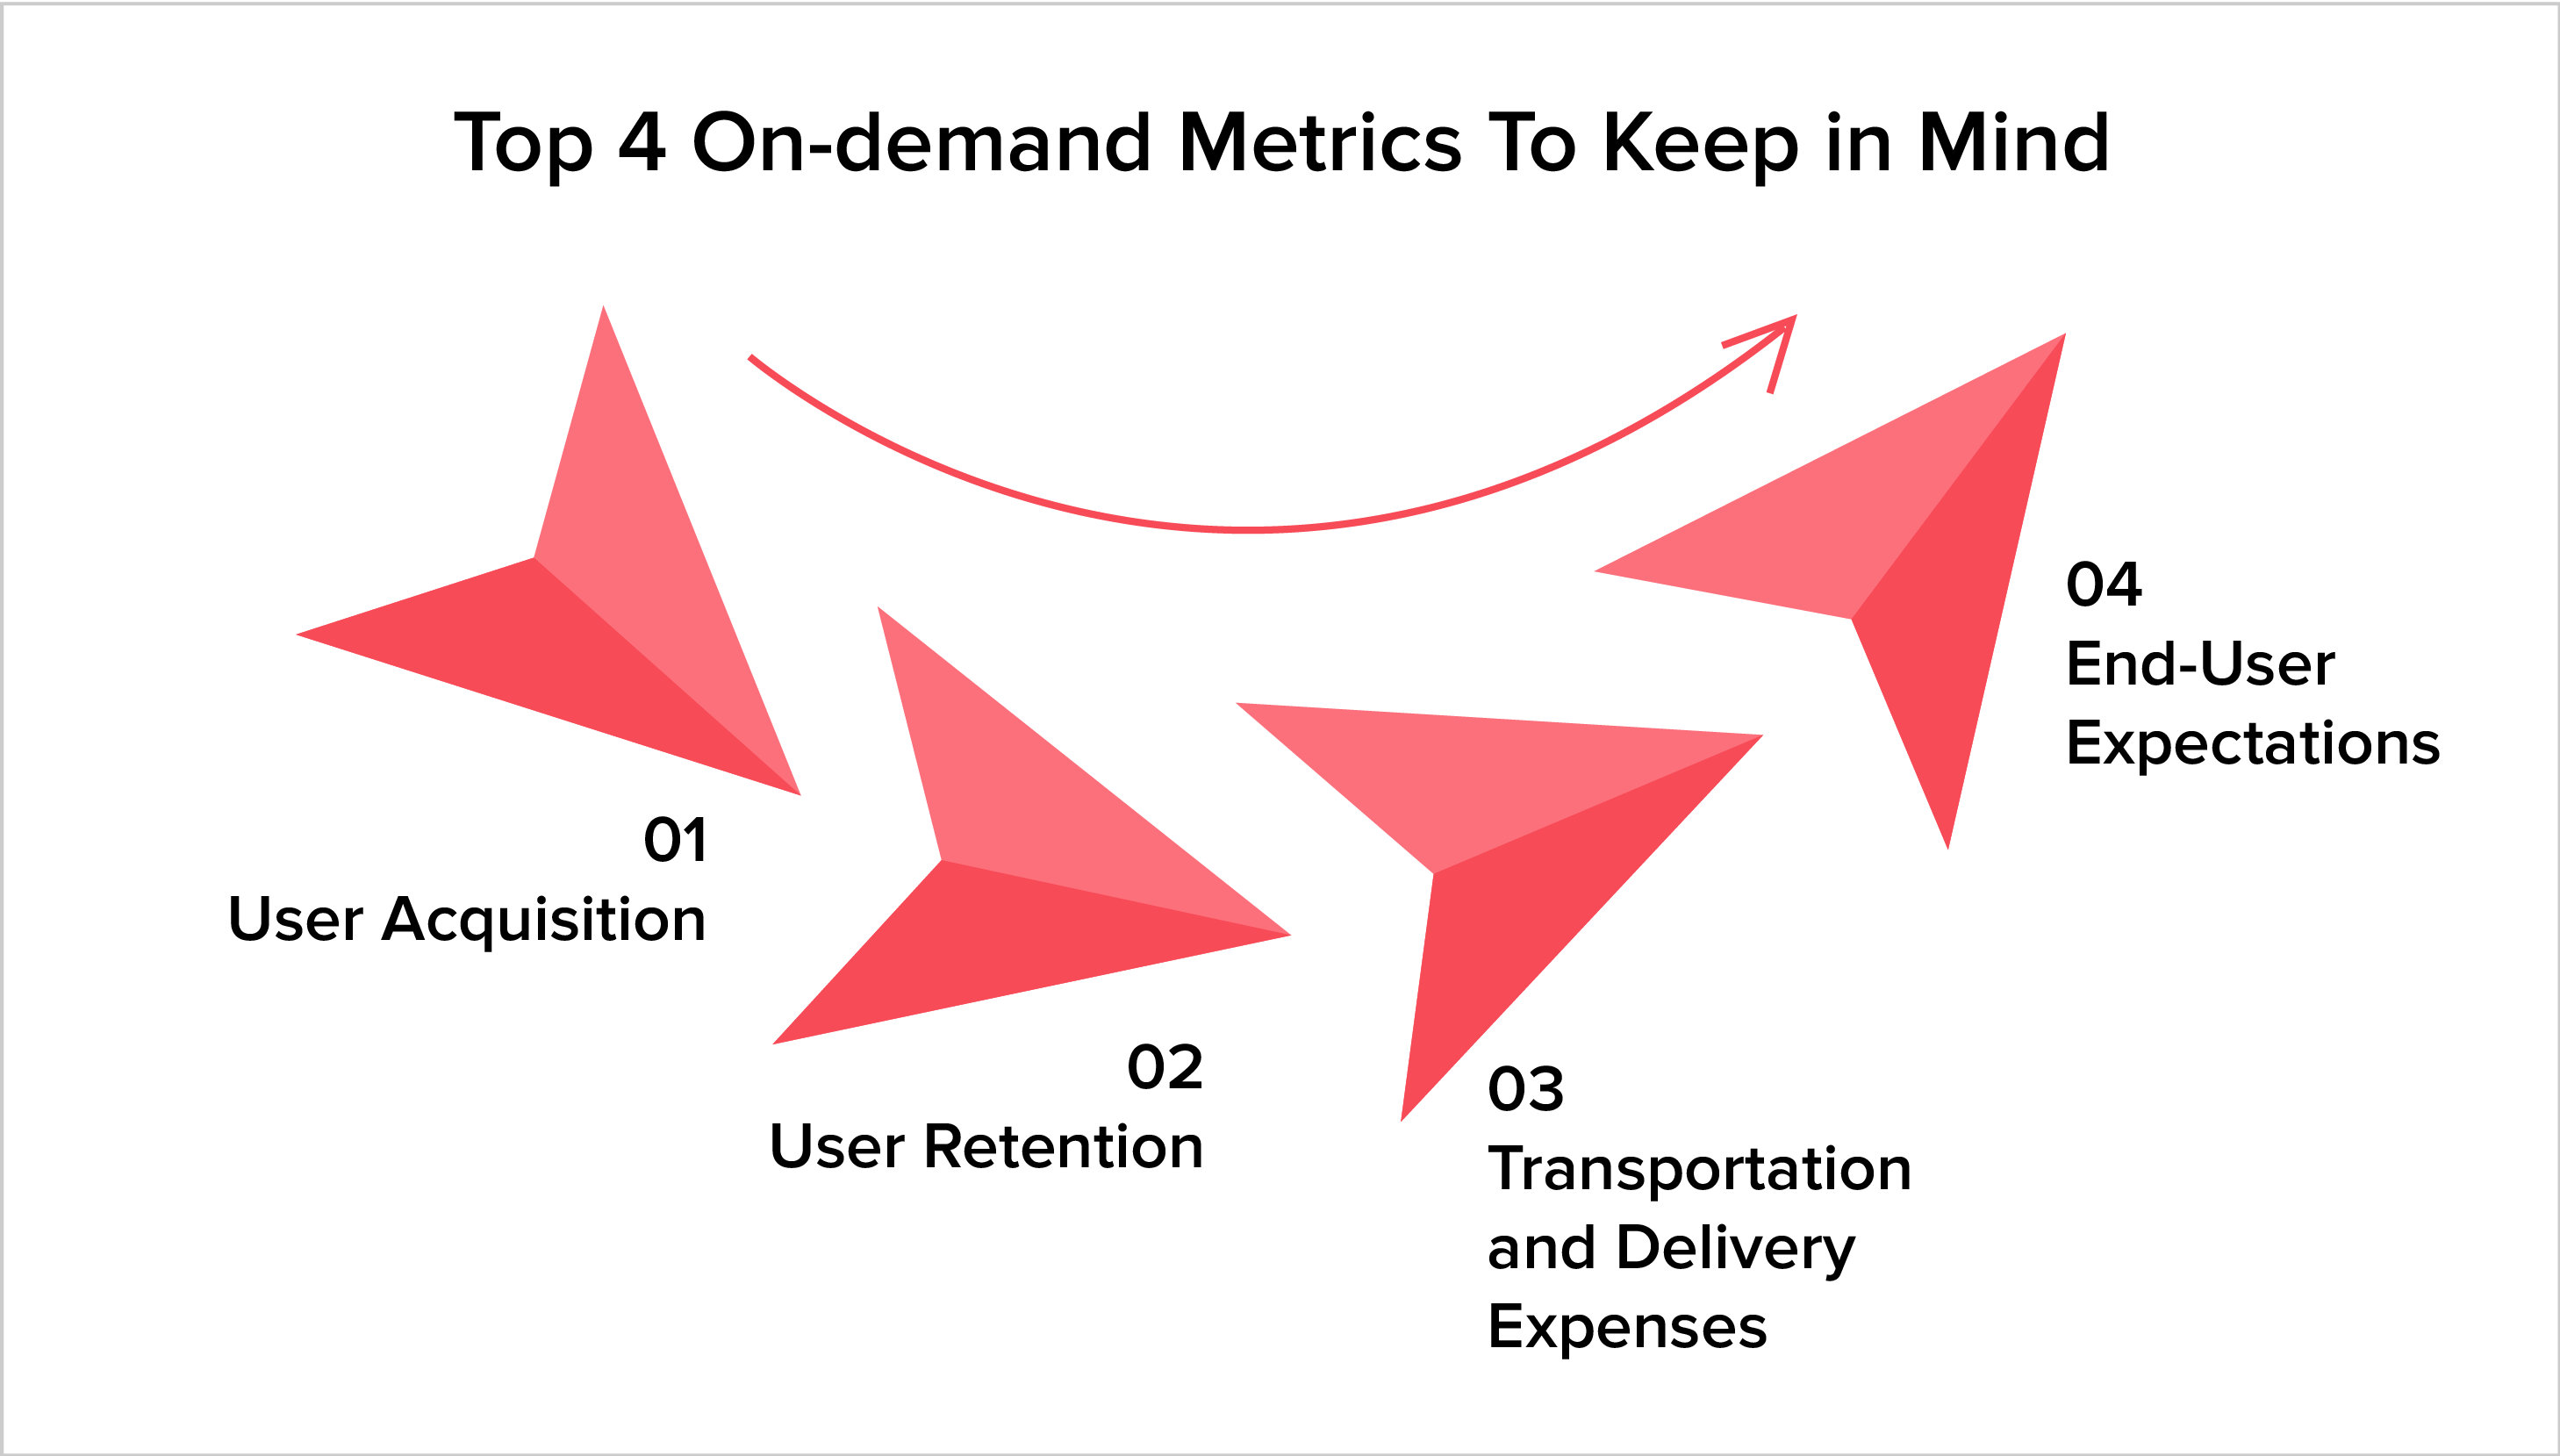 Top 4 On-demand Metrics To Keep in Mind